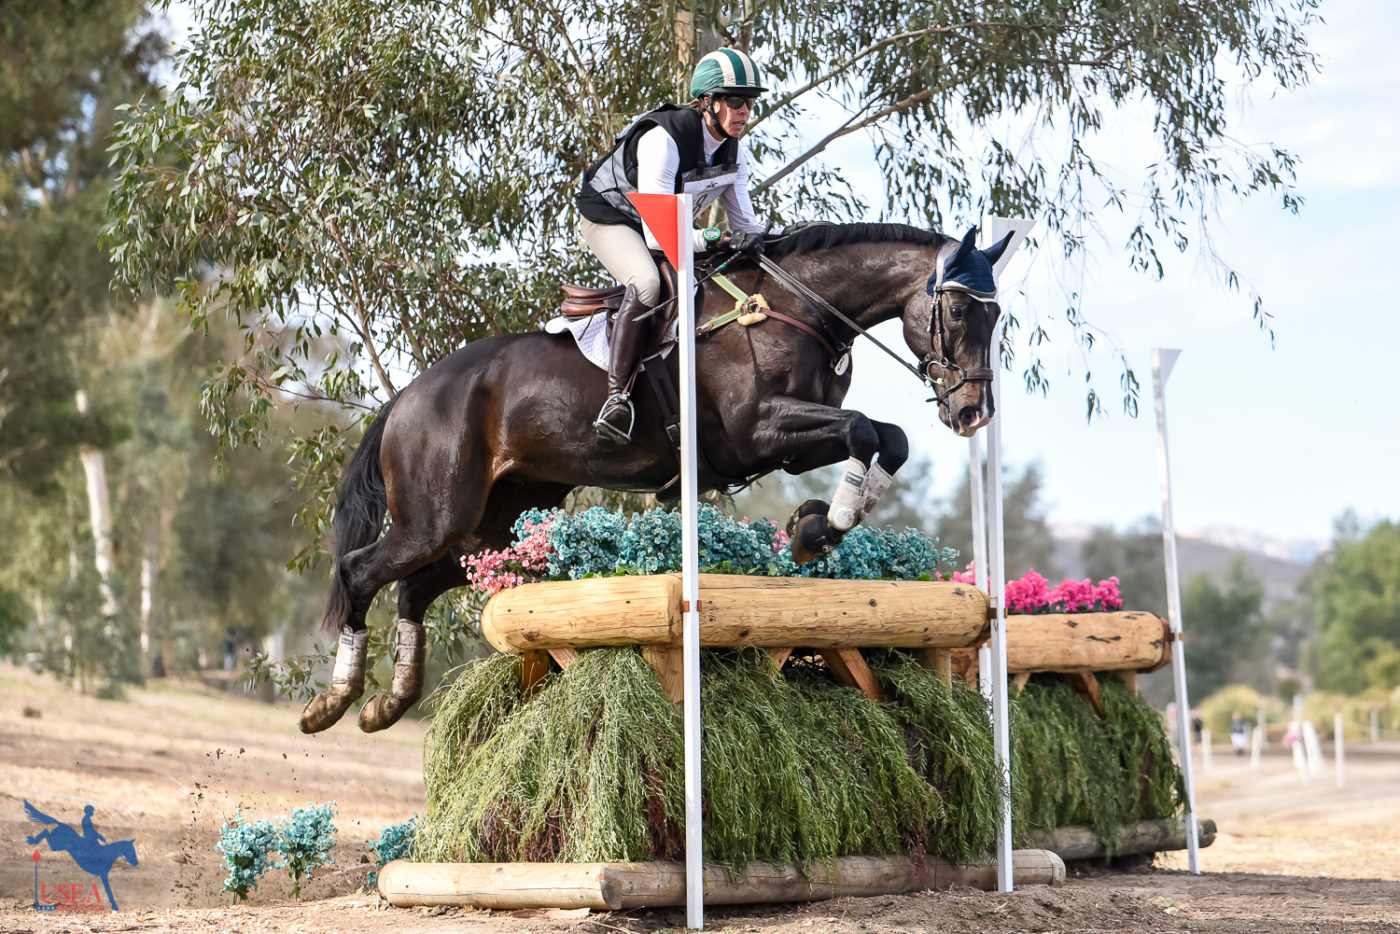 CCI3*-L 2nd - Asia Vedder and Isi - 32.3